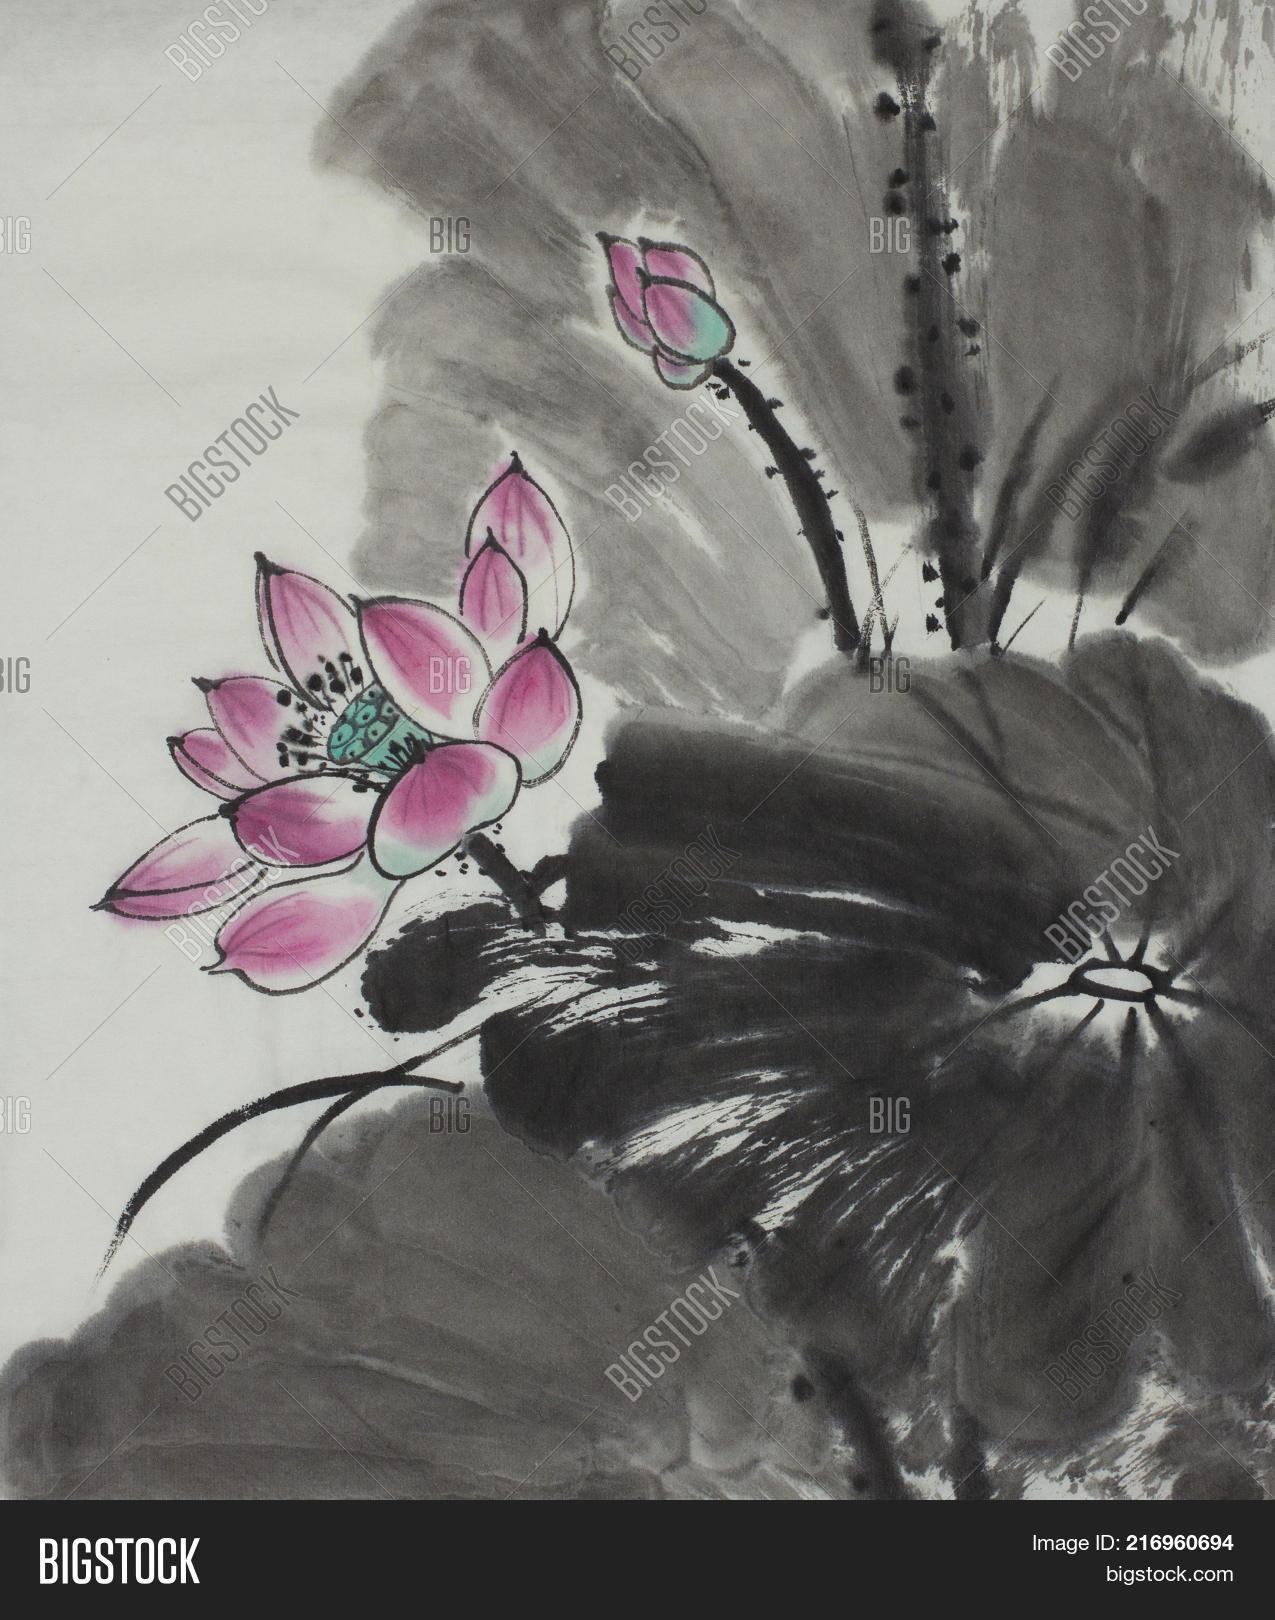 Bright lotus flower image photo free trial bigstock bright lotus flower painted in chinese style izmirmasajfo